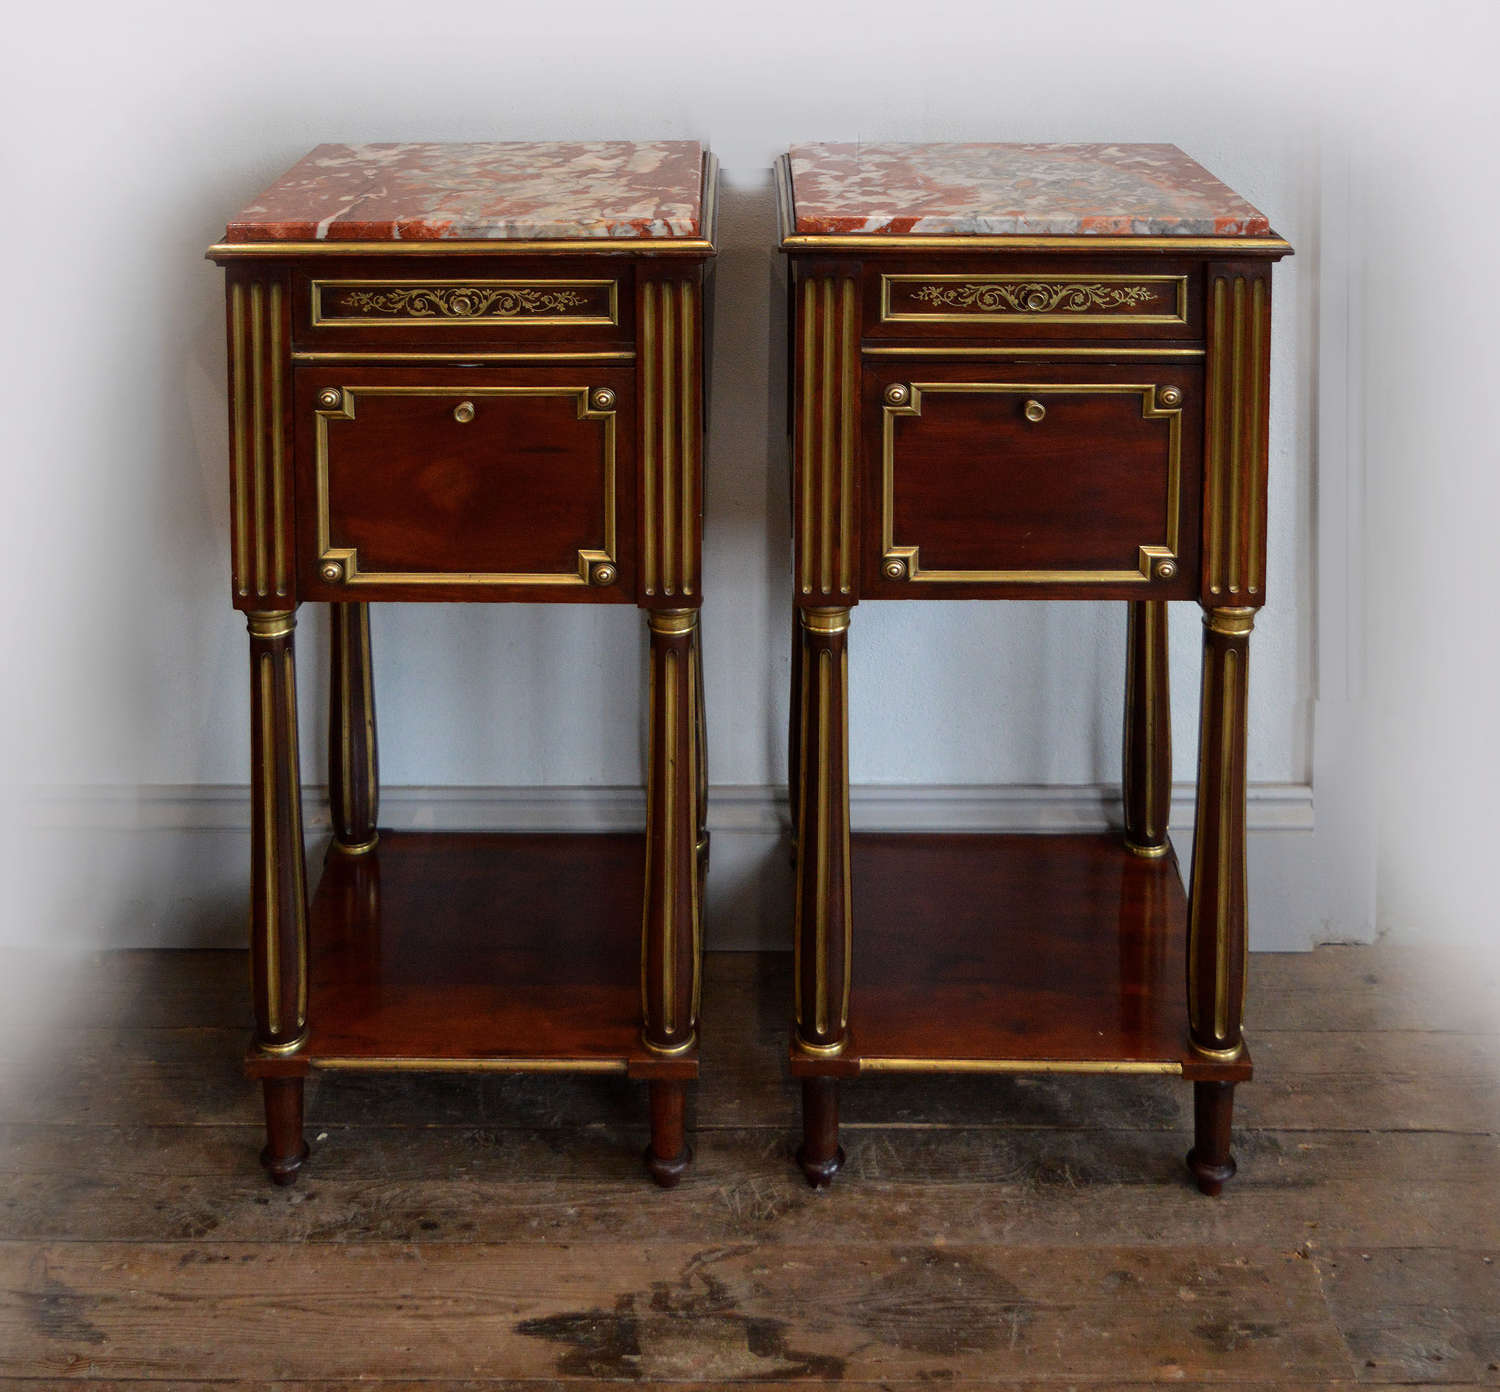 Rare pair of Mid 19th Century Napoleon III bedsides